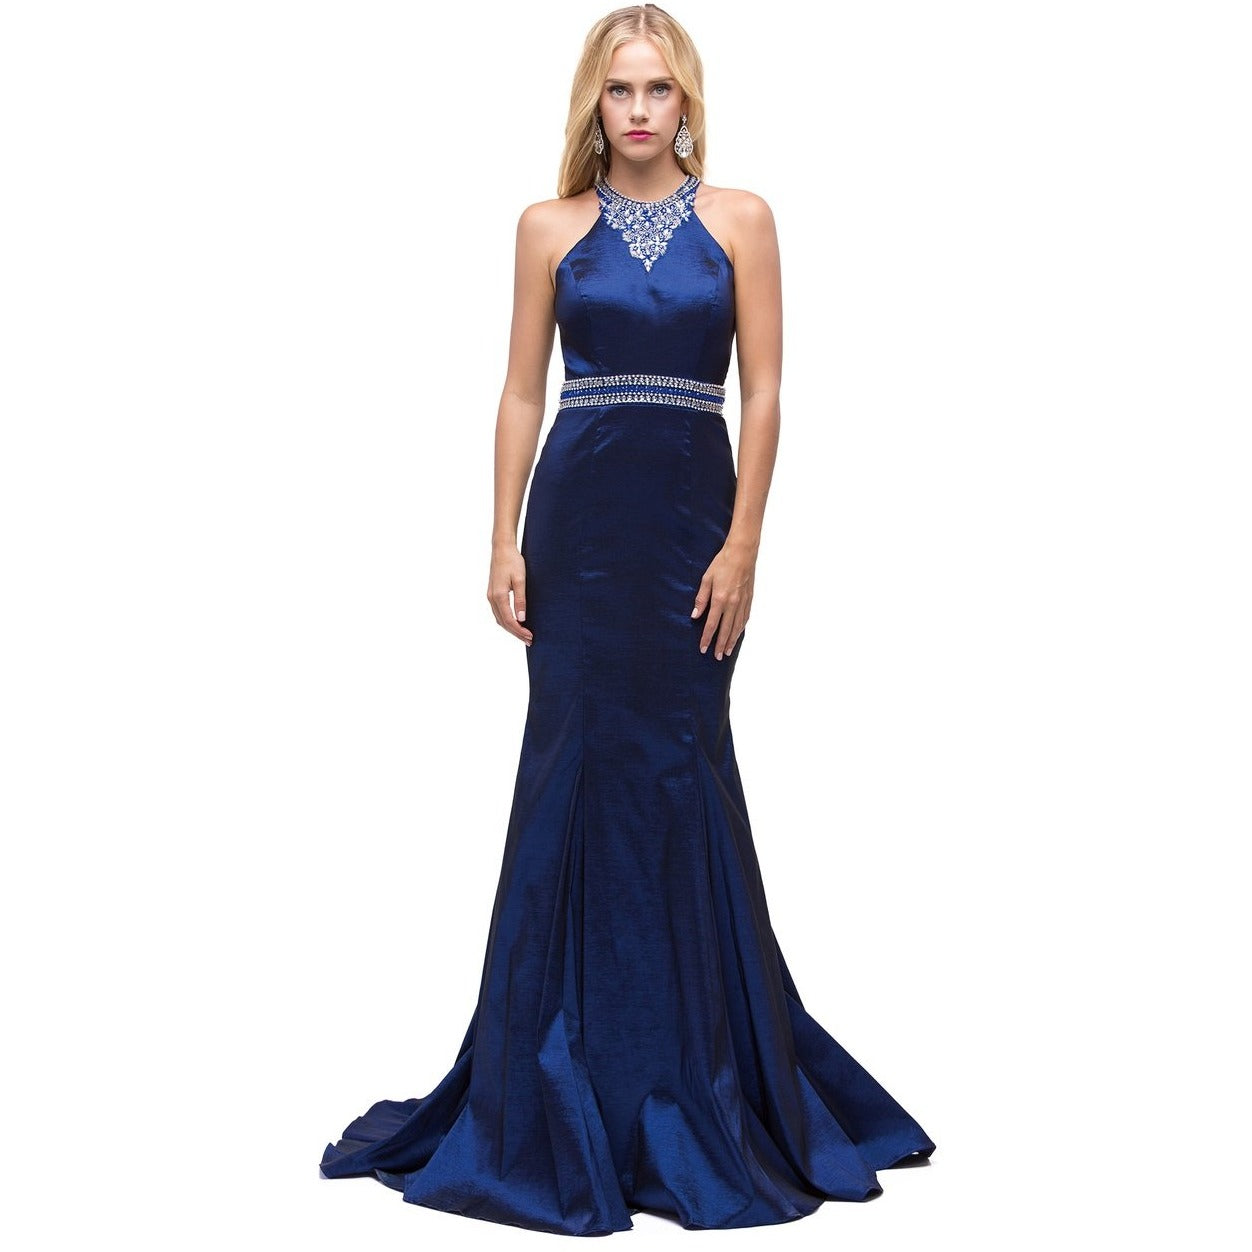 Navy Fit Flare Prom Dress With A Jeweled Neckline